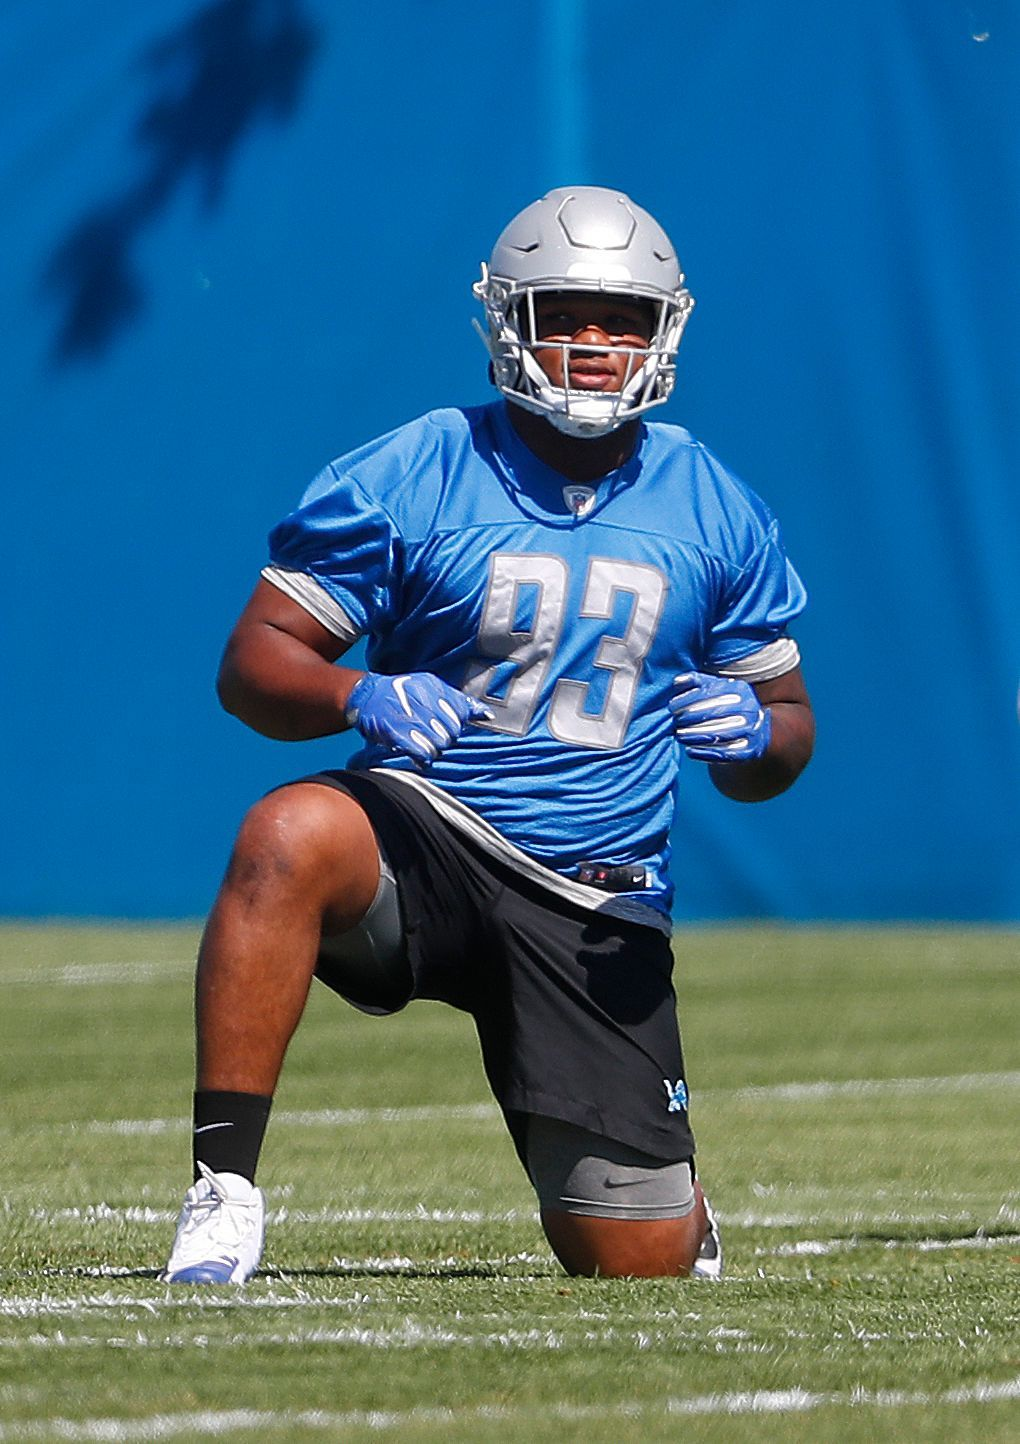 DT Da'Shawn Hand: A former five-star recruit who never lived up to the hype at Alabama, Hand has blossomed during his rookie season with the Lions. He's been the team's best interior pass rusher, without question, recording a pair of sacks and a team-high 15 hurries. Hand also shows good, um, hand usage, when defending the run. He only has occasional struggles when working against double teams. Grade: A-